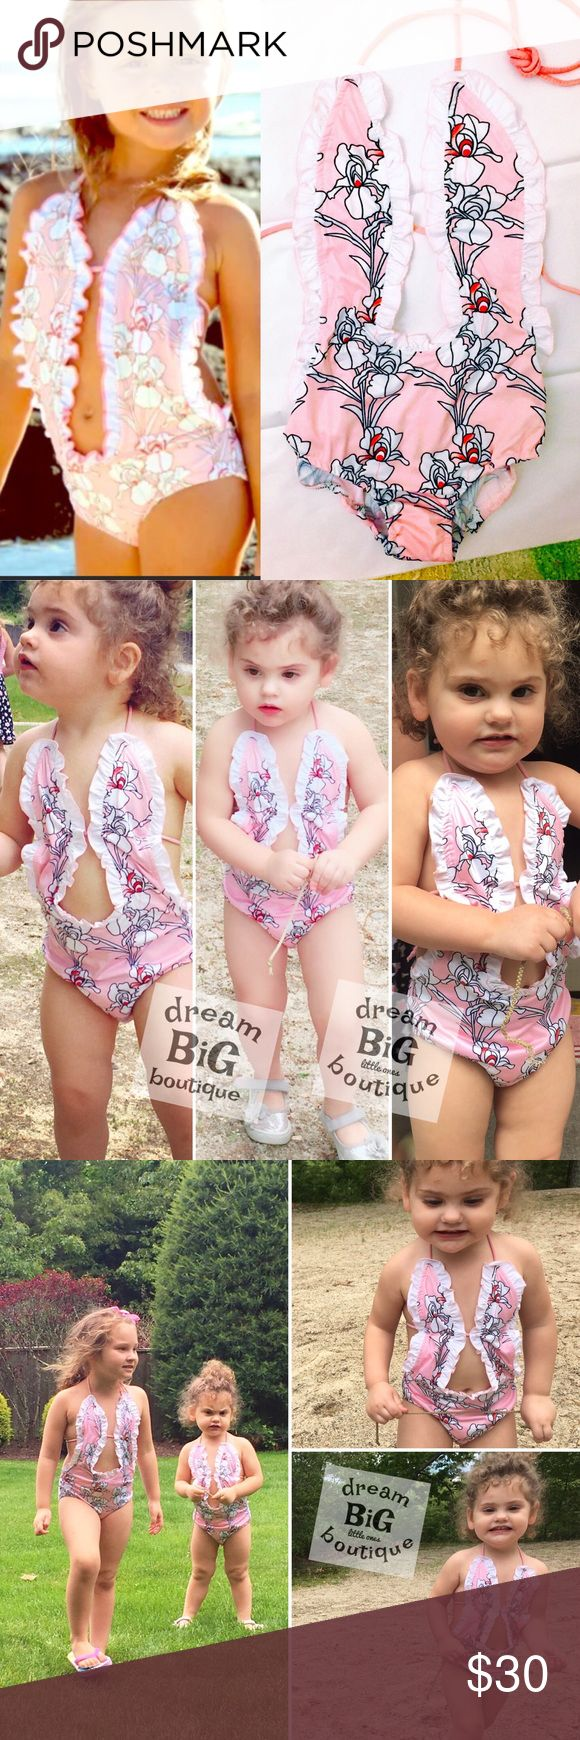 Toddler girl Swimsuit 1pc V pink size 18 24 2 3 4 Welcome to Dream BiG little Ones Boutique! Our Diva Deep V Swim Collection is quickly becoming a 2017 customer favorite :)  What Mommy's love most about this swim line -  TIE STRAPS! They allow you to easily and effortlessly adjustments the suits to fit your growing child My favorite part? This suit will last you more than one season! Tag price: $59.99-$79.99 THIS POSTING:  Design - Parisol Pink  Size: 18 24 2T 3T 4T & 5T - all in stock…